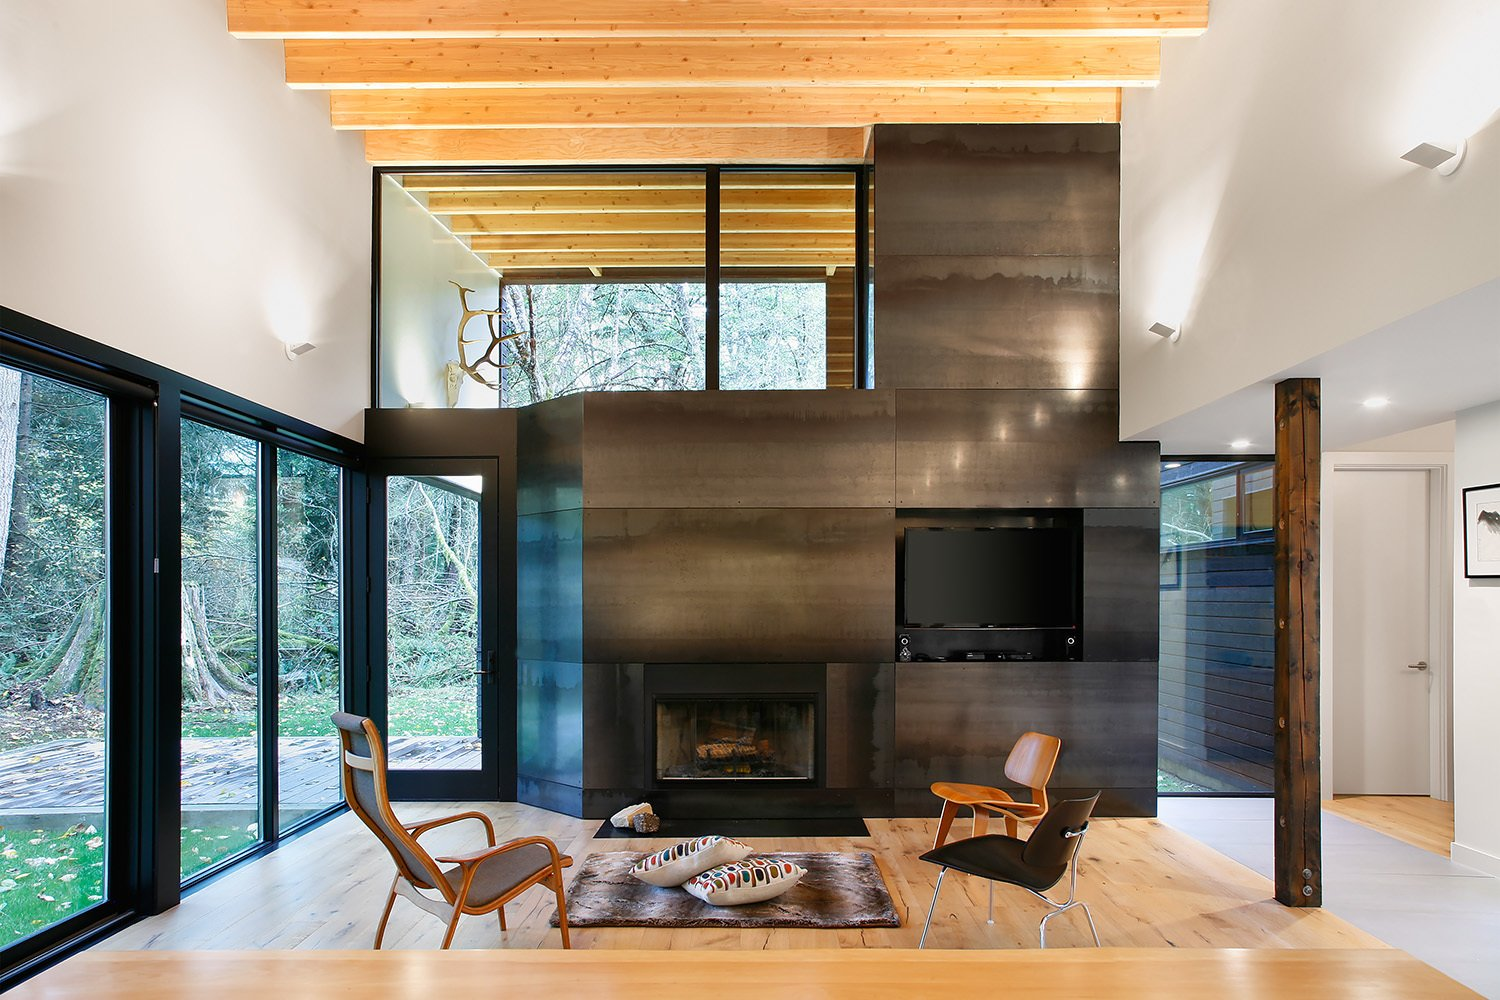 """Living Room, Light Hardwood Floor, Chair, and Standard Layout Fireplace """"From the courtyard, you then enter the house proper, directly into the main living room,"""" Hutchison says. """"From this room, you have a panoramic view looking out through the trees to the river, or back into the courtyard."""" The wood-burning fireplace, from Majestic, is clad in steel panels. Eames Molded Plywood lounge chairs sit side-by-side in the living room.  Courtyard House on a River by Kelly Dawson"""